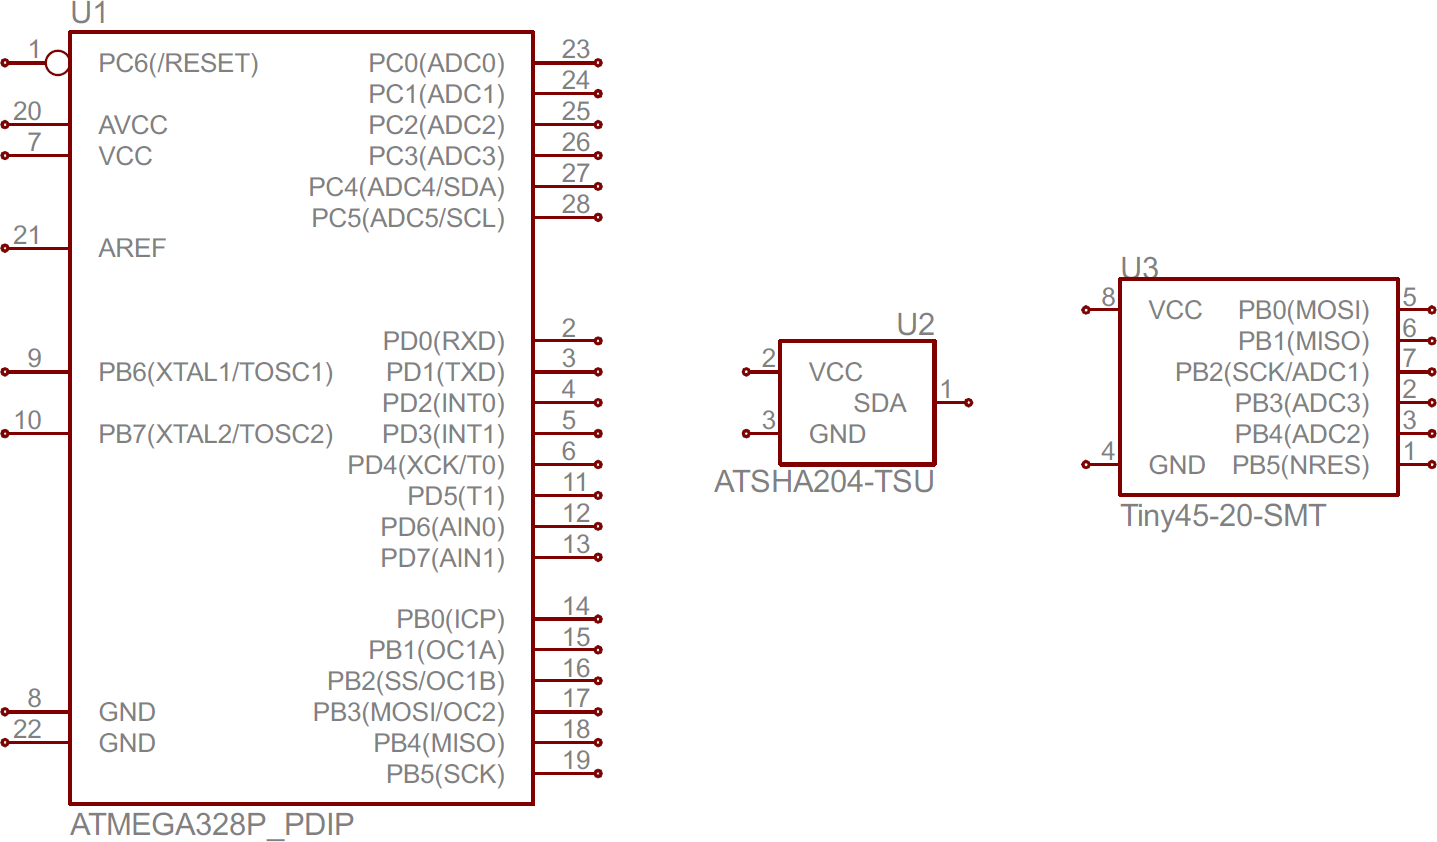 How To Read A Schematic Building Data Wiring Diagram Atmega328 Atsha204 And Attiny45 Ic Symbols